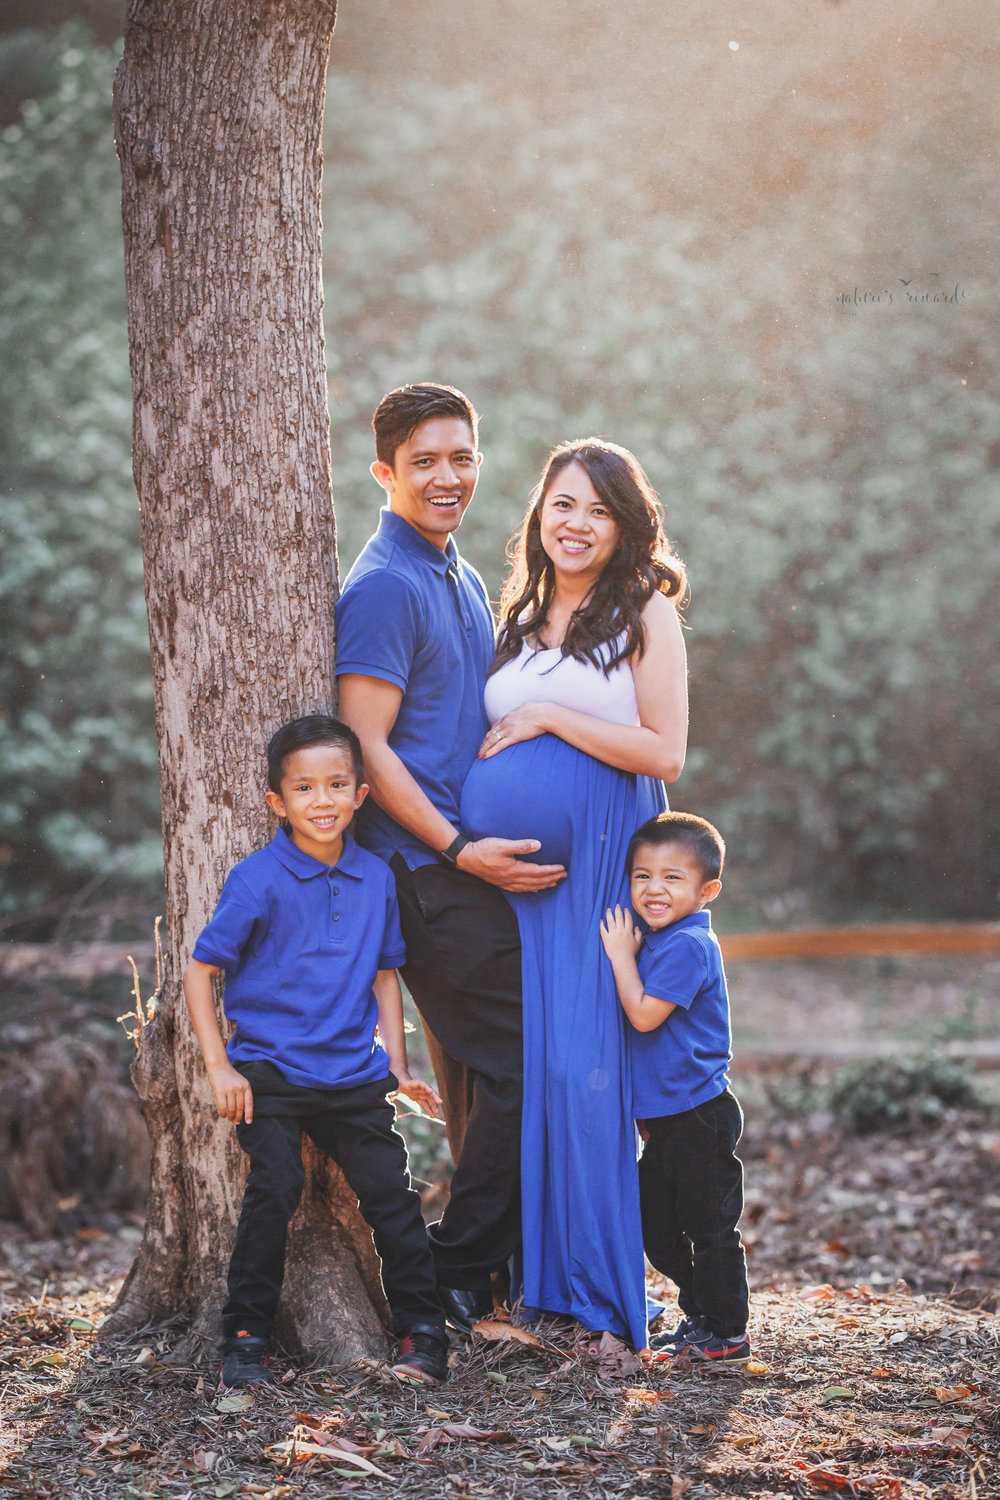 Happy family celebrating the coming of a new baby to complete their family wearing blue to symbolize the gender of the baby in a park setting in this maternity session portrait by Nature's Reward Photography